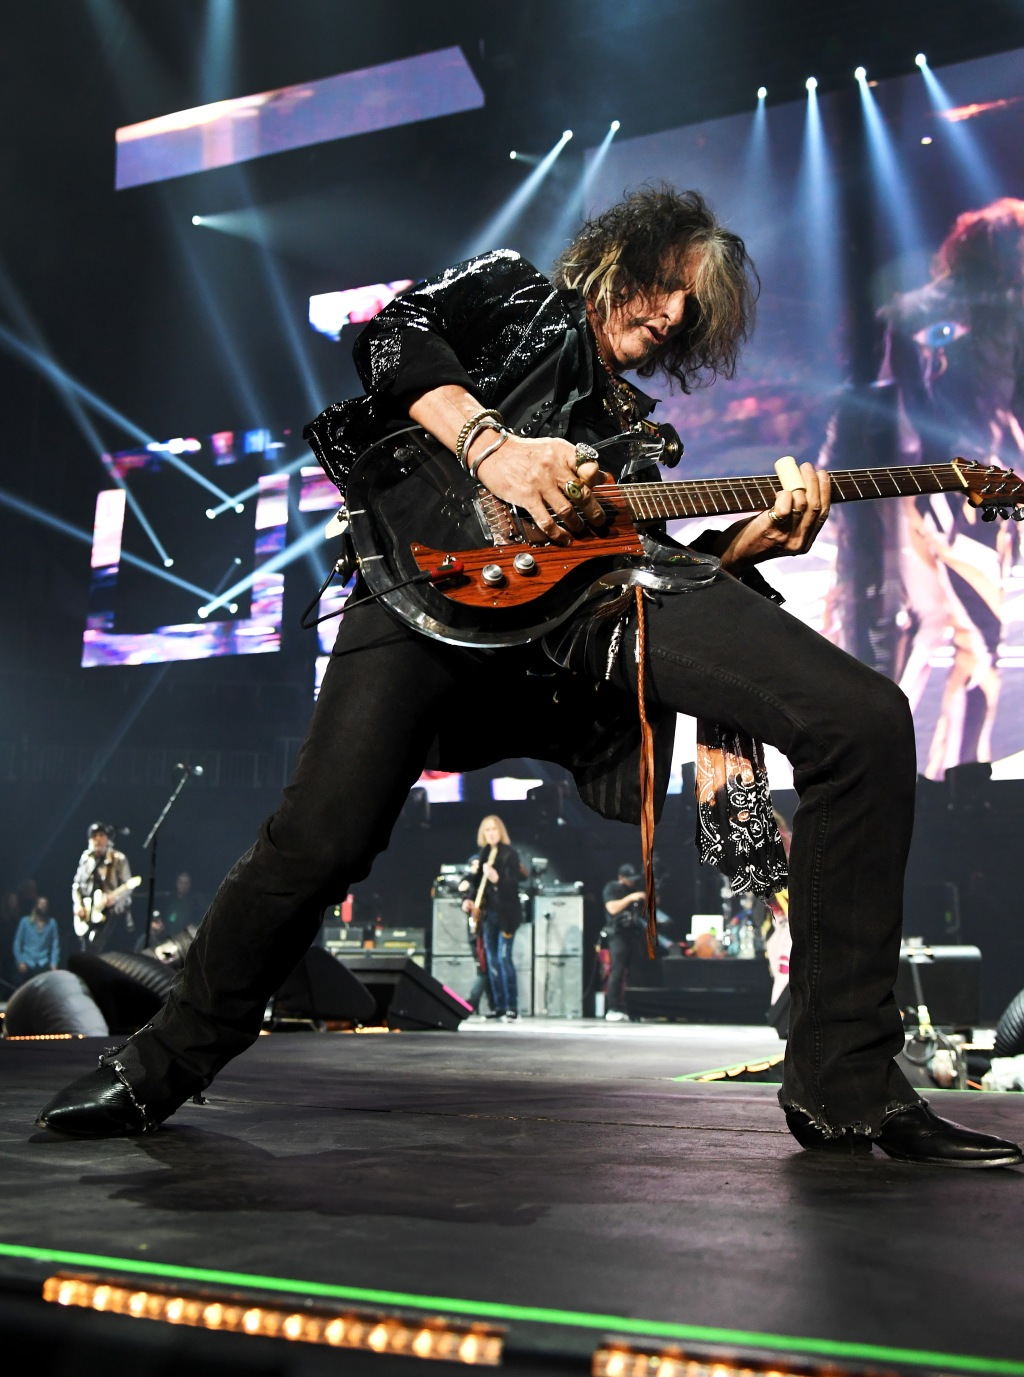 Joe Perry of Aerosmith performs onstage during Day 2 of Bud Light Super Bowl Music Fest at State Farm Arena on February 1, 2019 in Atlanta, Georgia.